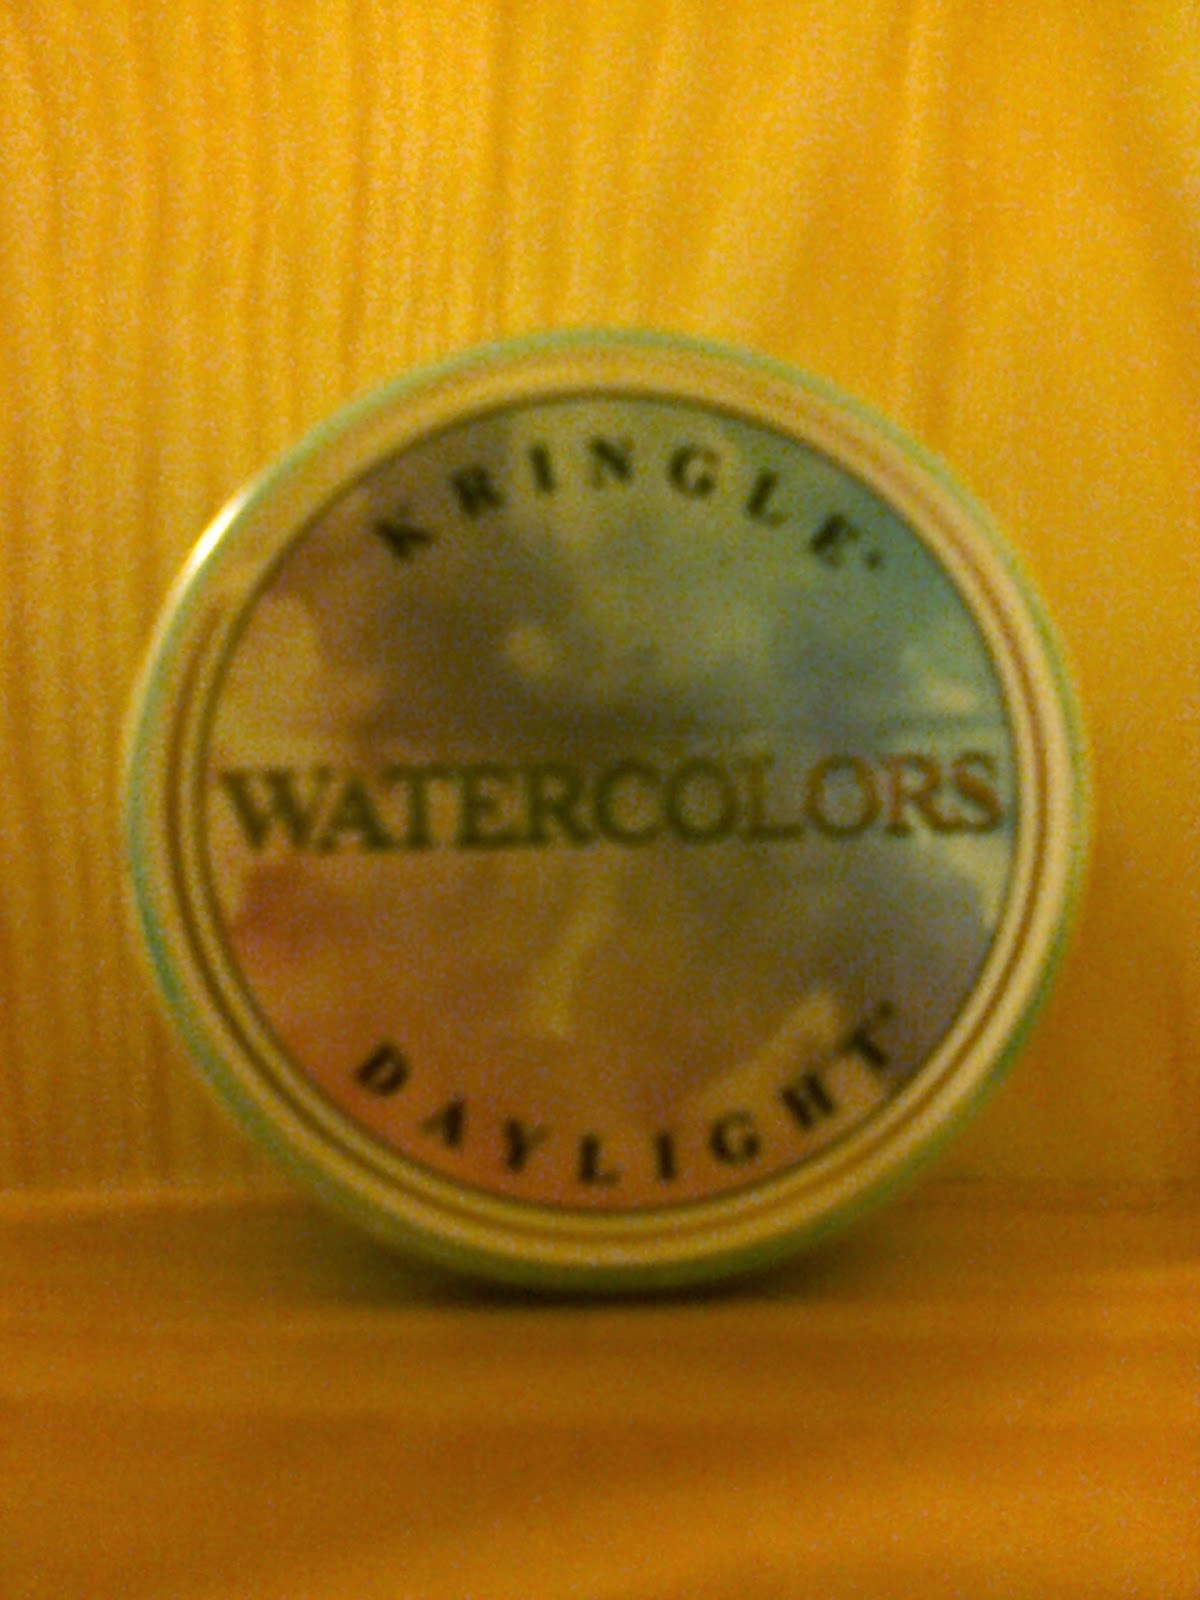 Watercolors Kringle Candle